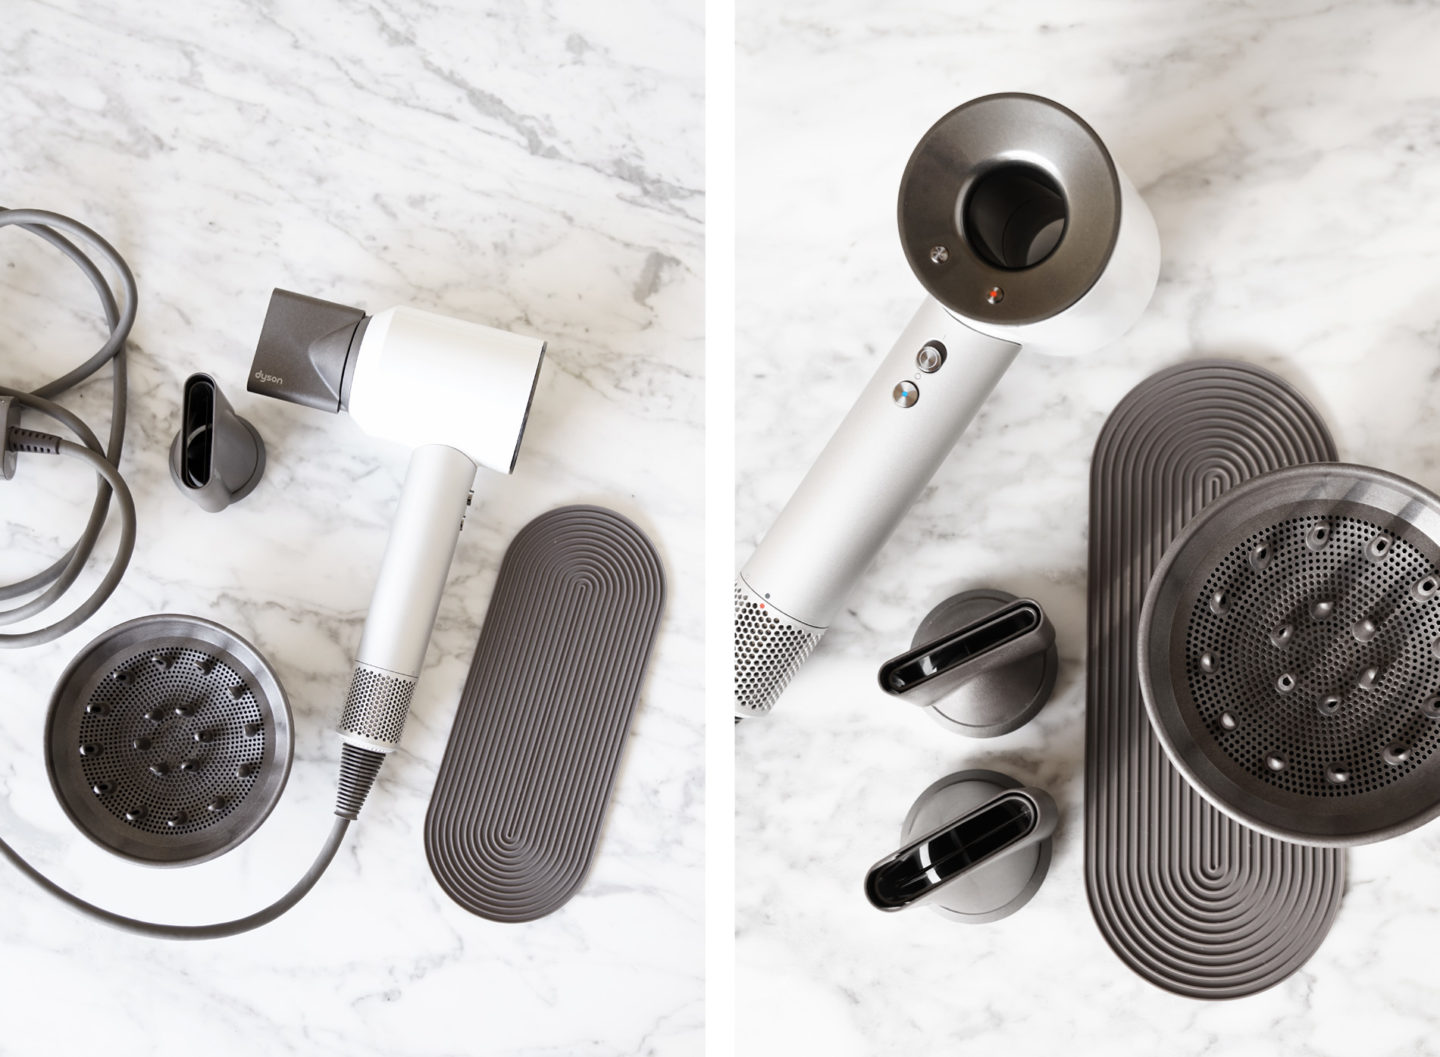 Dyson Supersonic Hairdryer Review   The Beauty Look Book